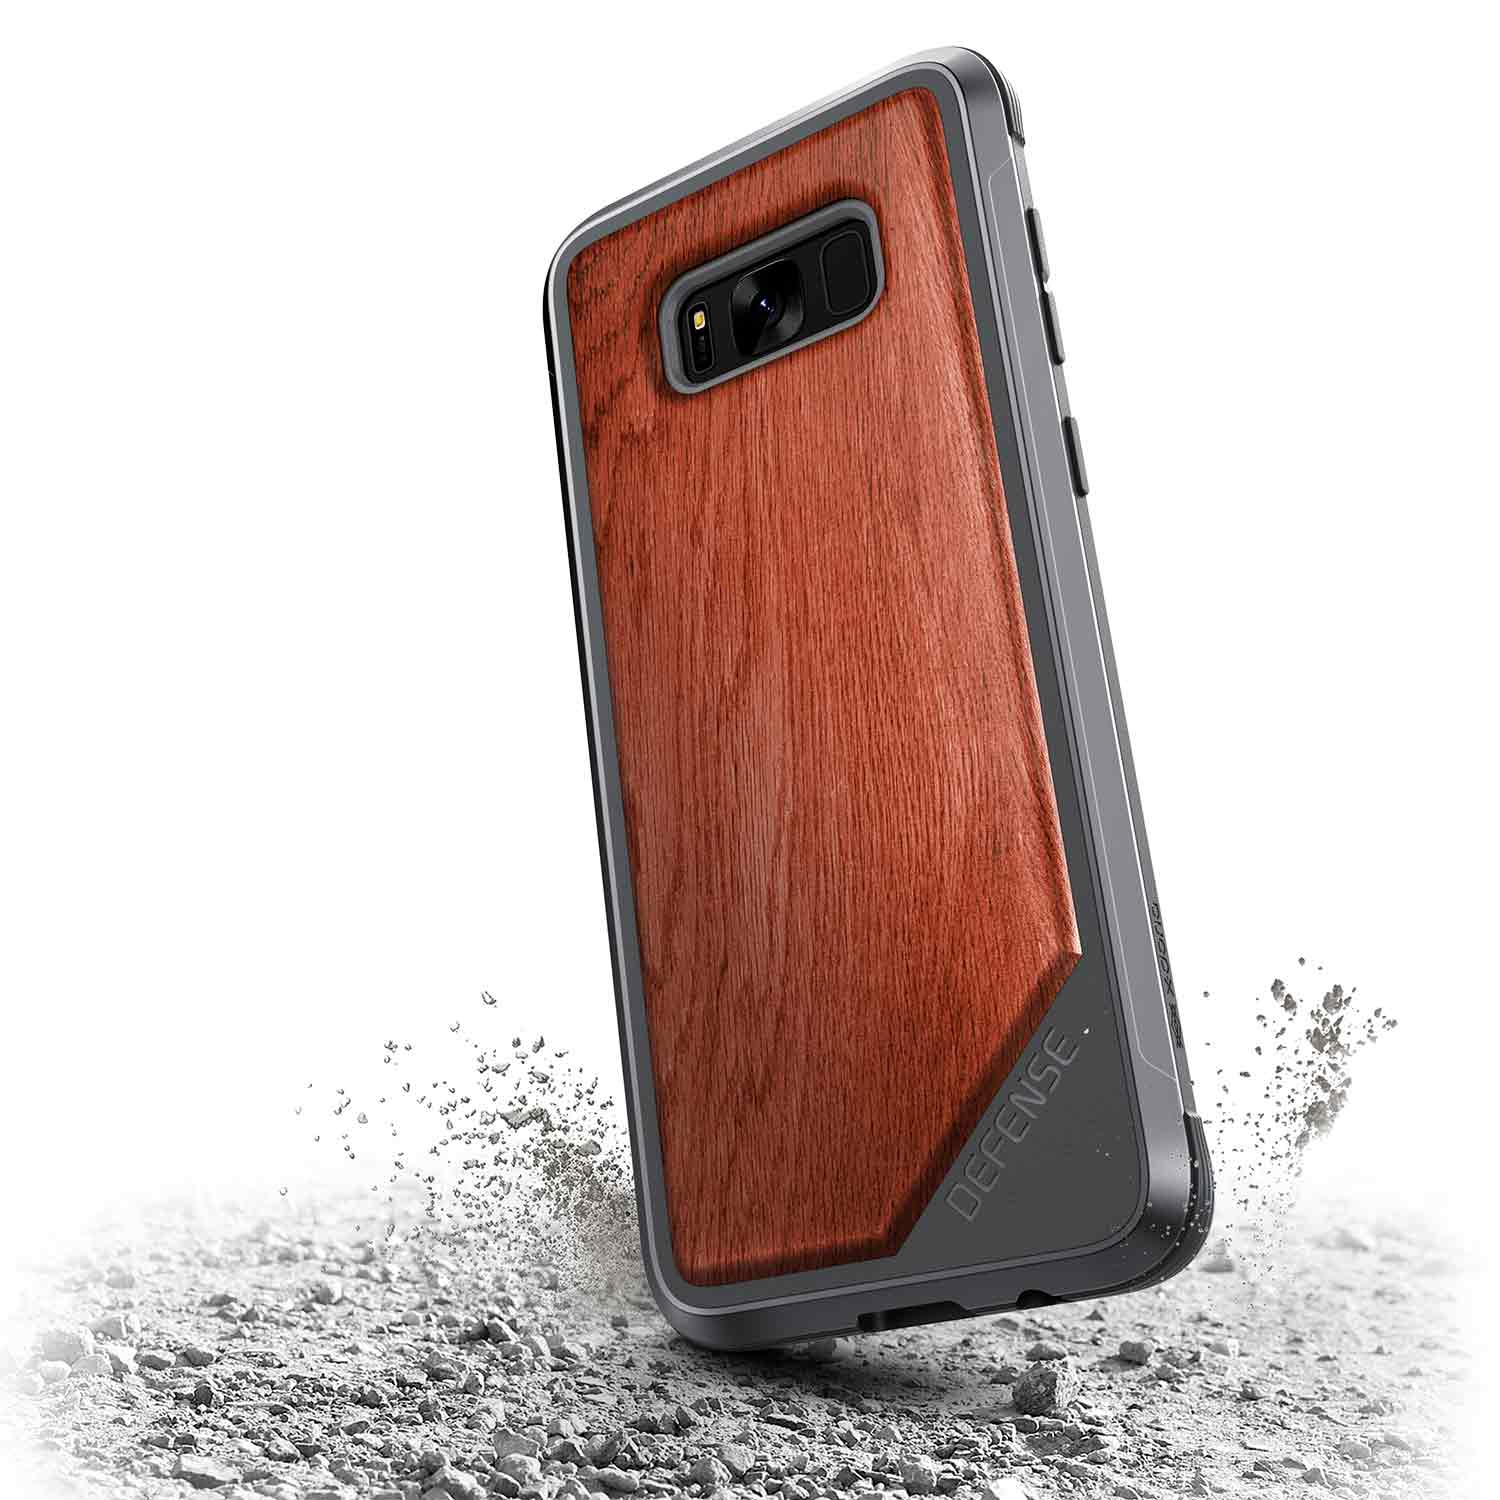 457965 DefenseLux GalaxyS8 Edge Plus Rosewood 01